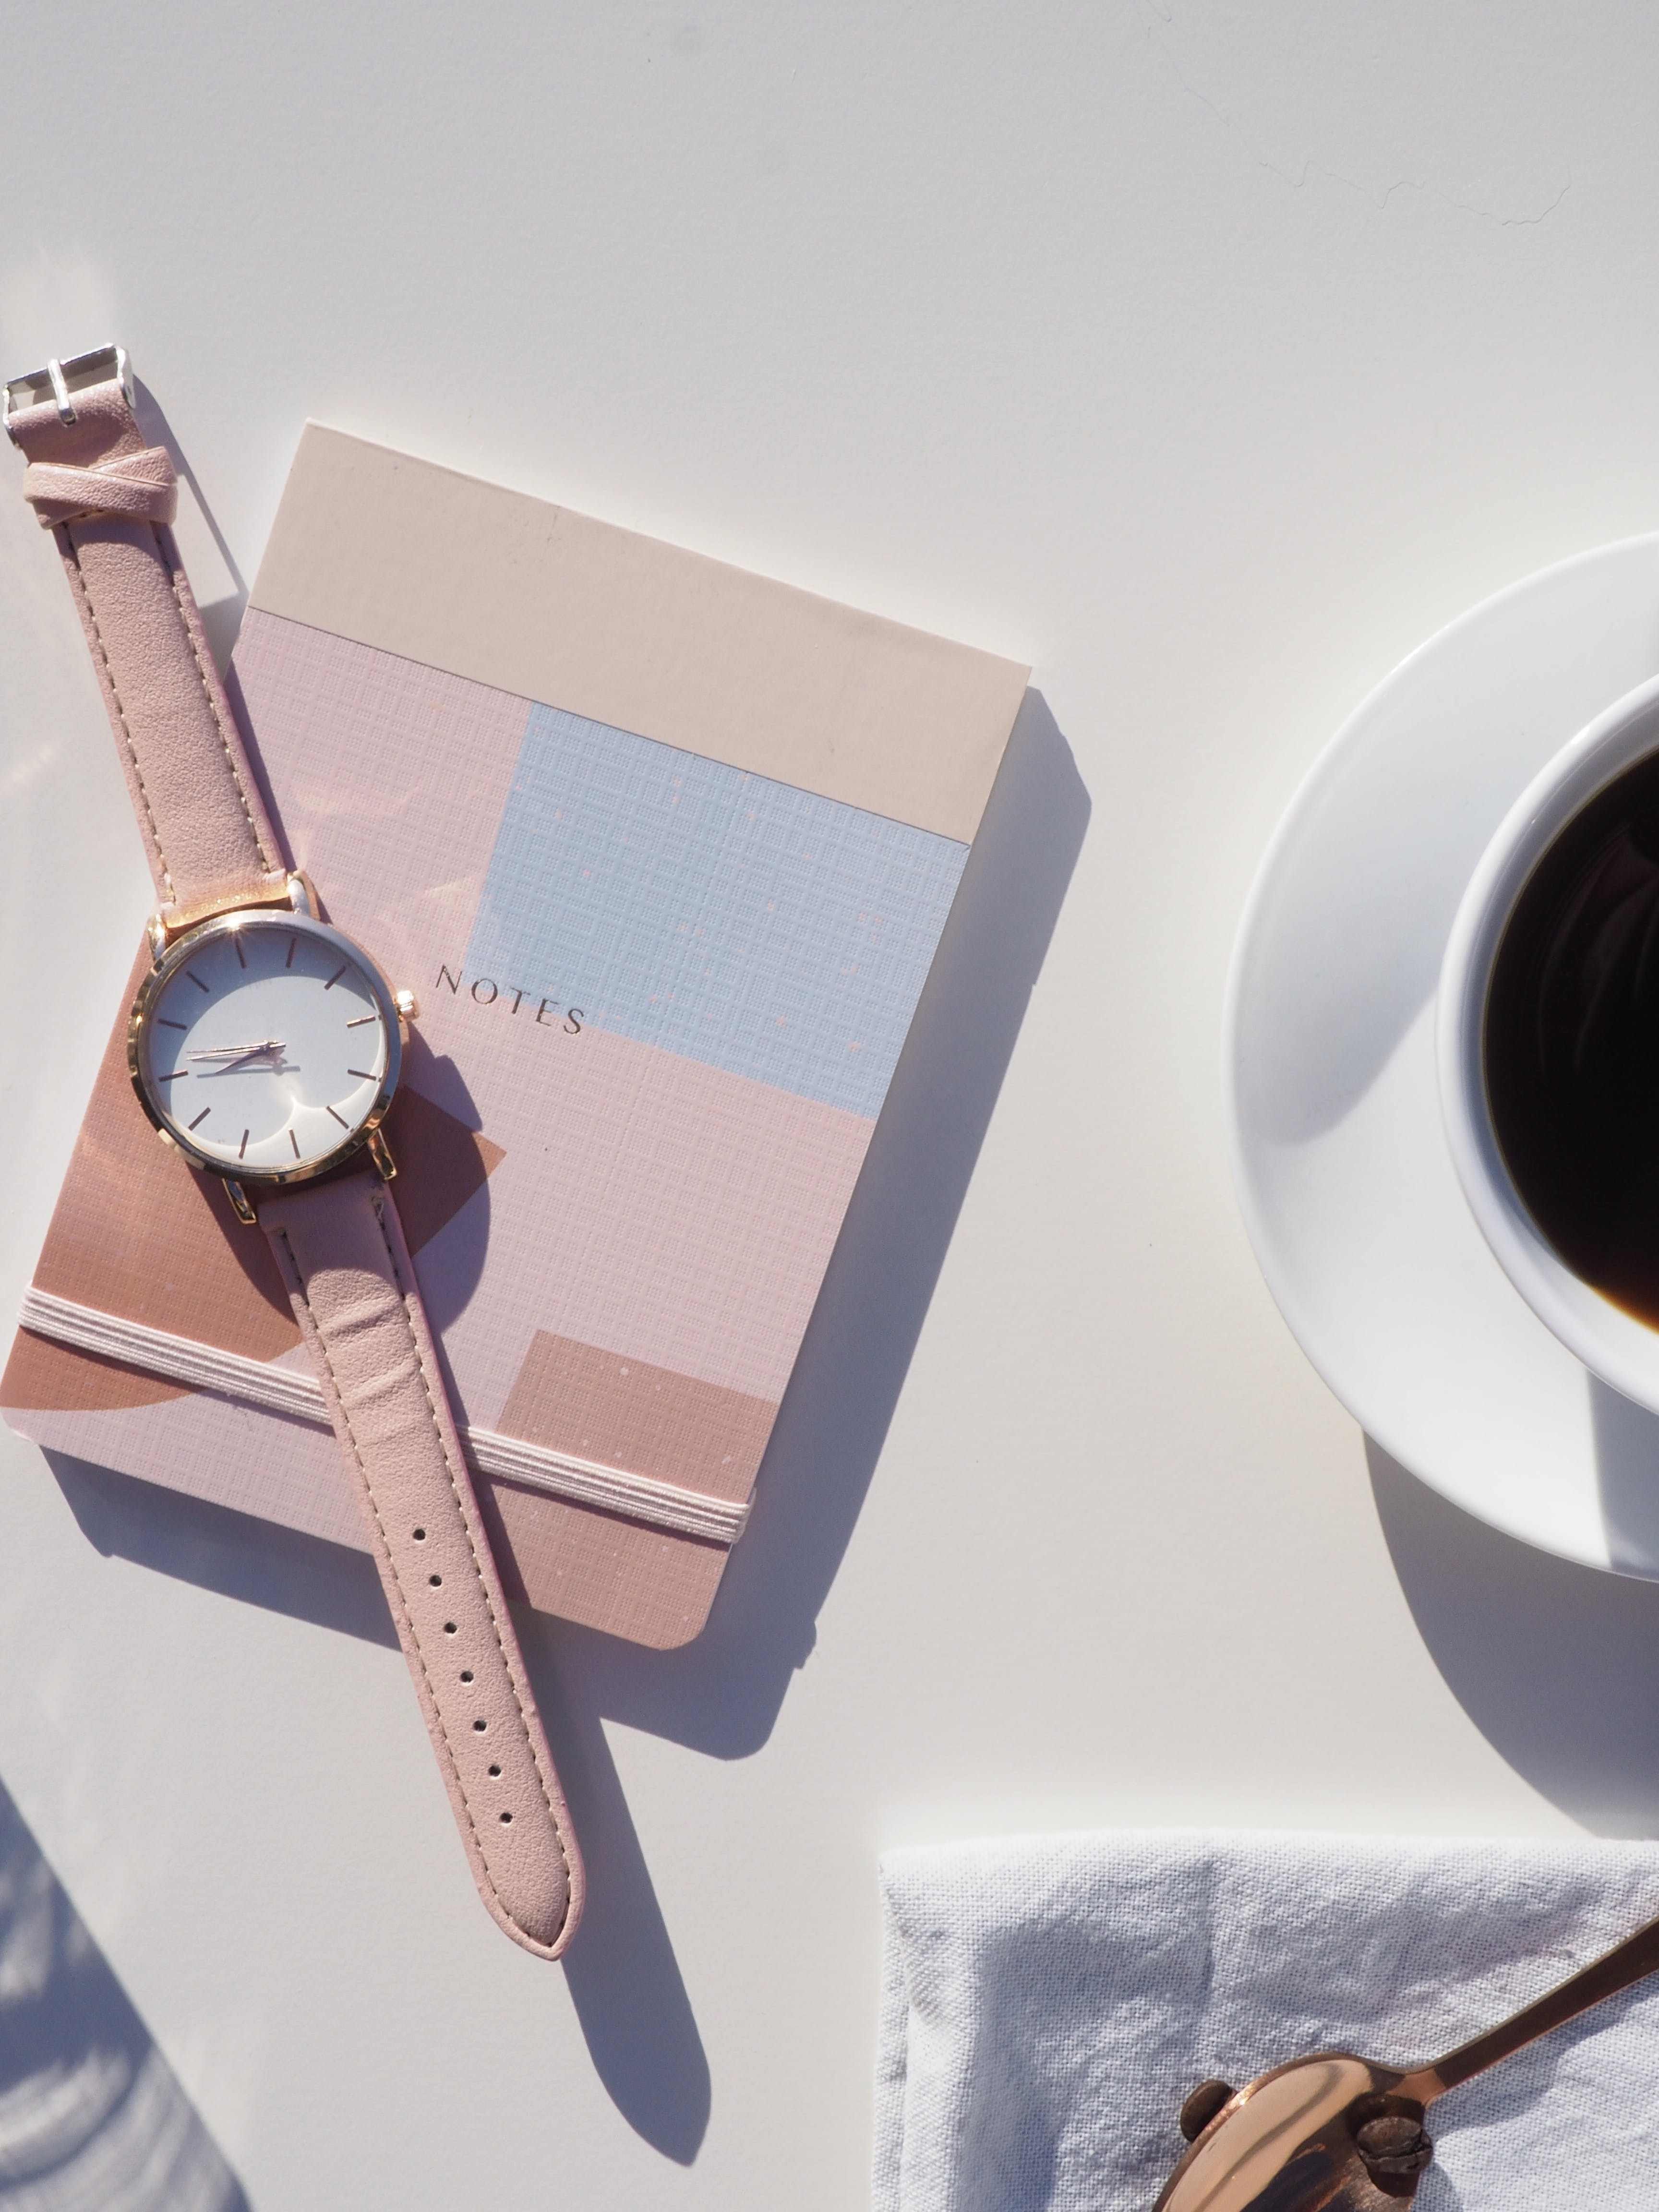 Round Gold-colored Analog Watch With Pink Leather Strap on Pink Notebook